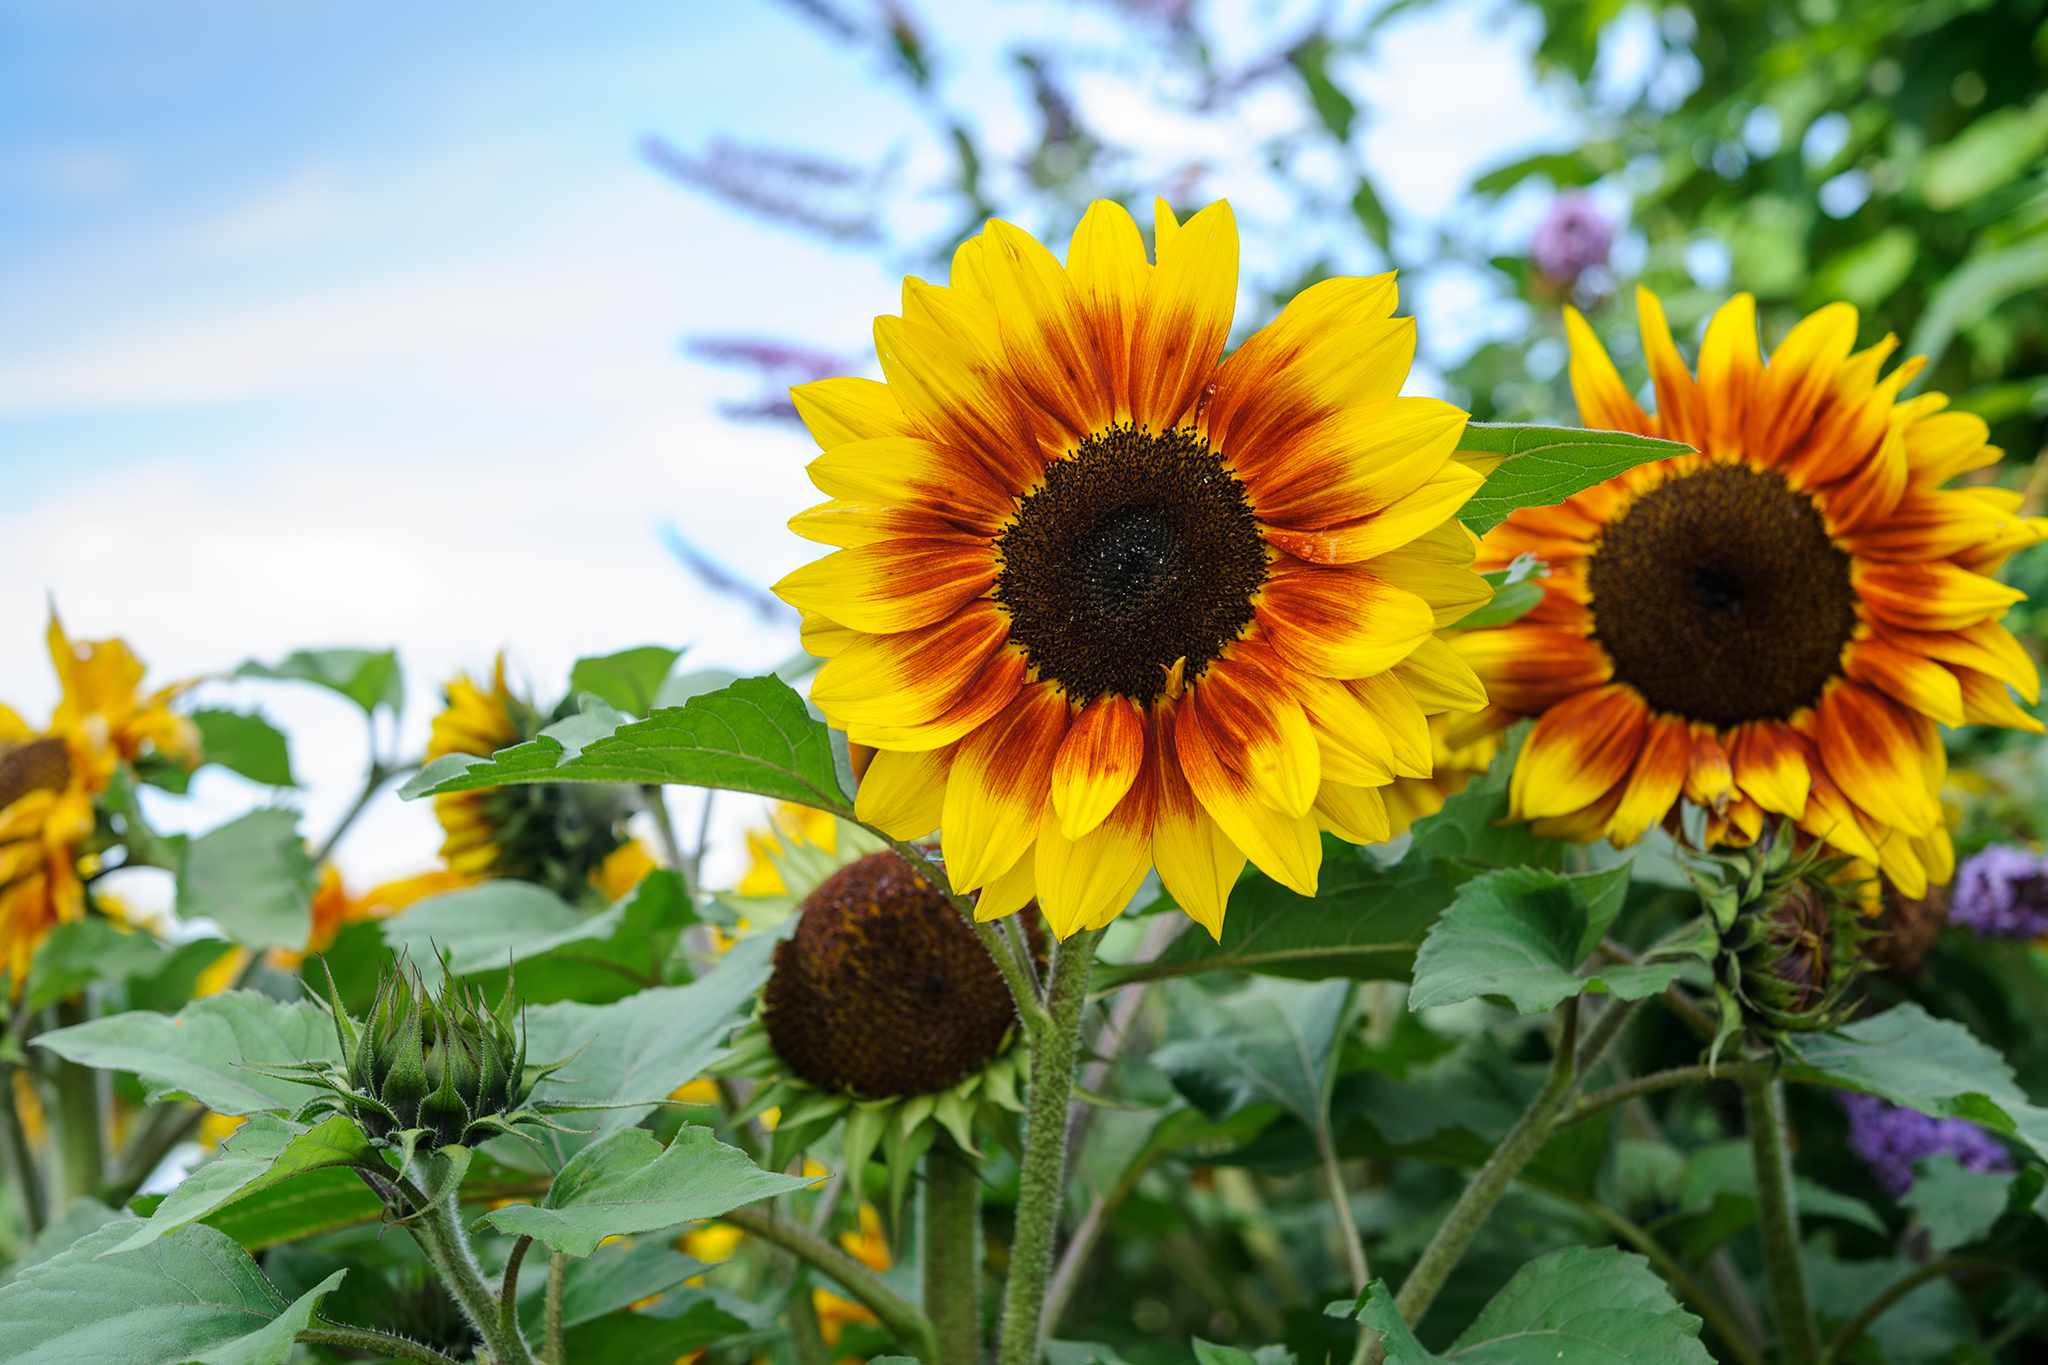 Sunflowers from seed